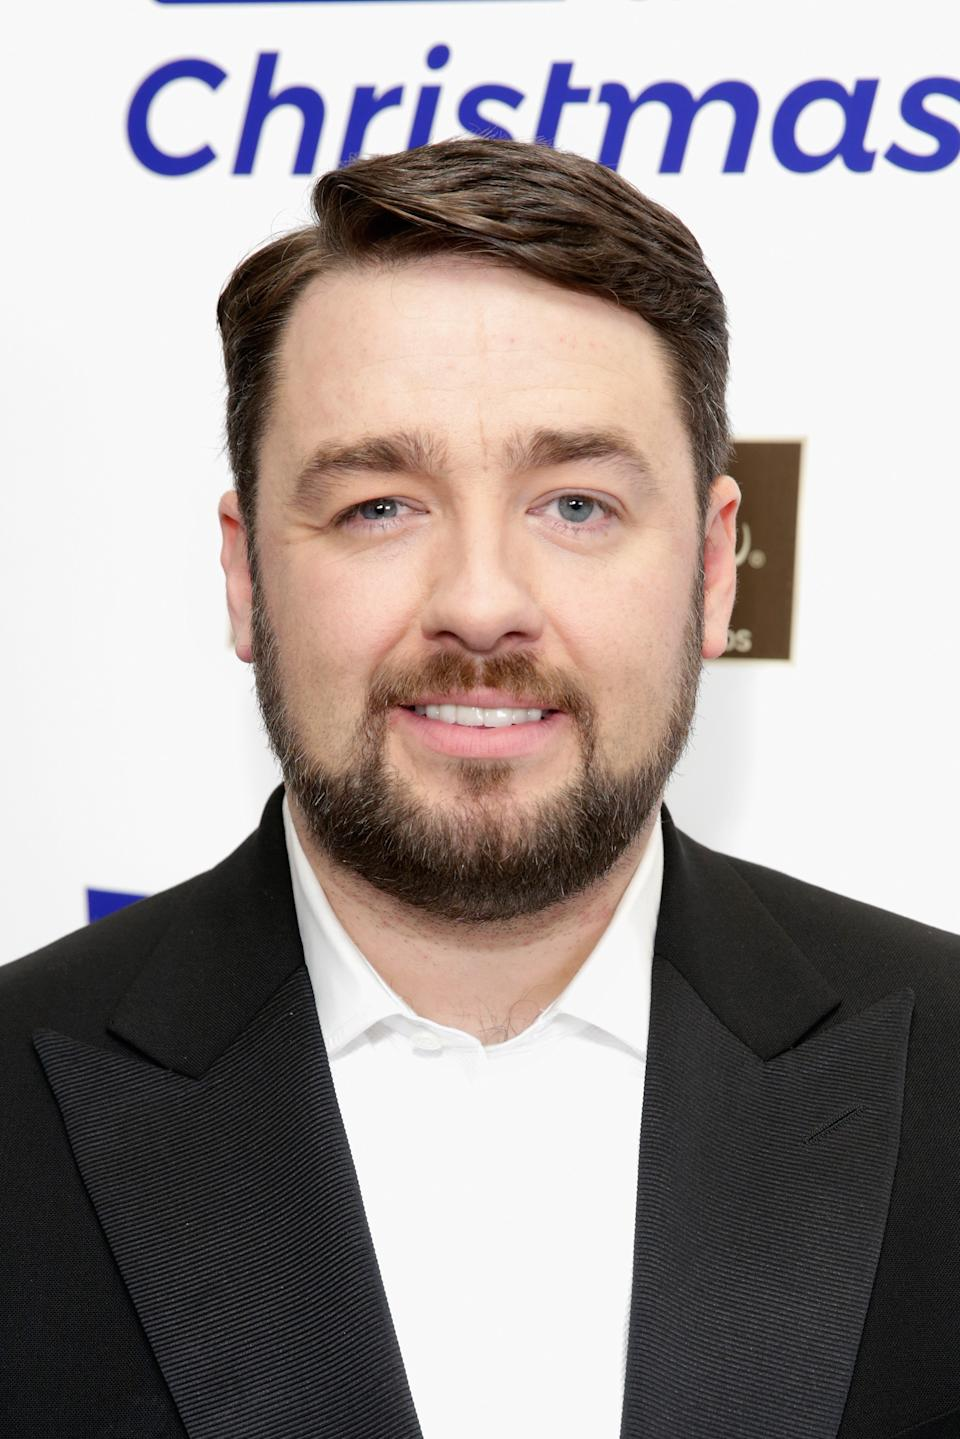 Jason Manford backstage at Magic FM's Magic of Christmas concert at London Palladium on November 26, 2017 in London, England.  (Photo by John Phillips/Getty Images)